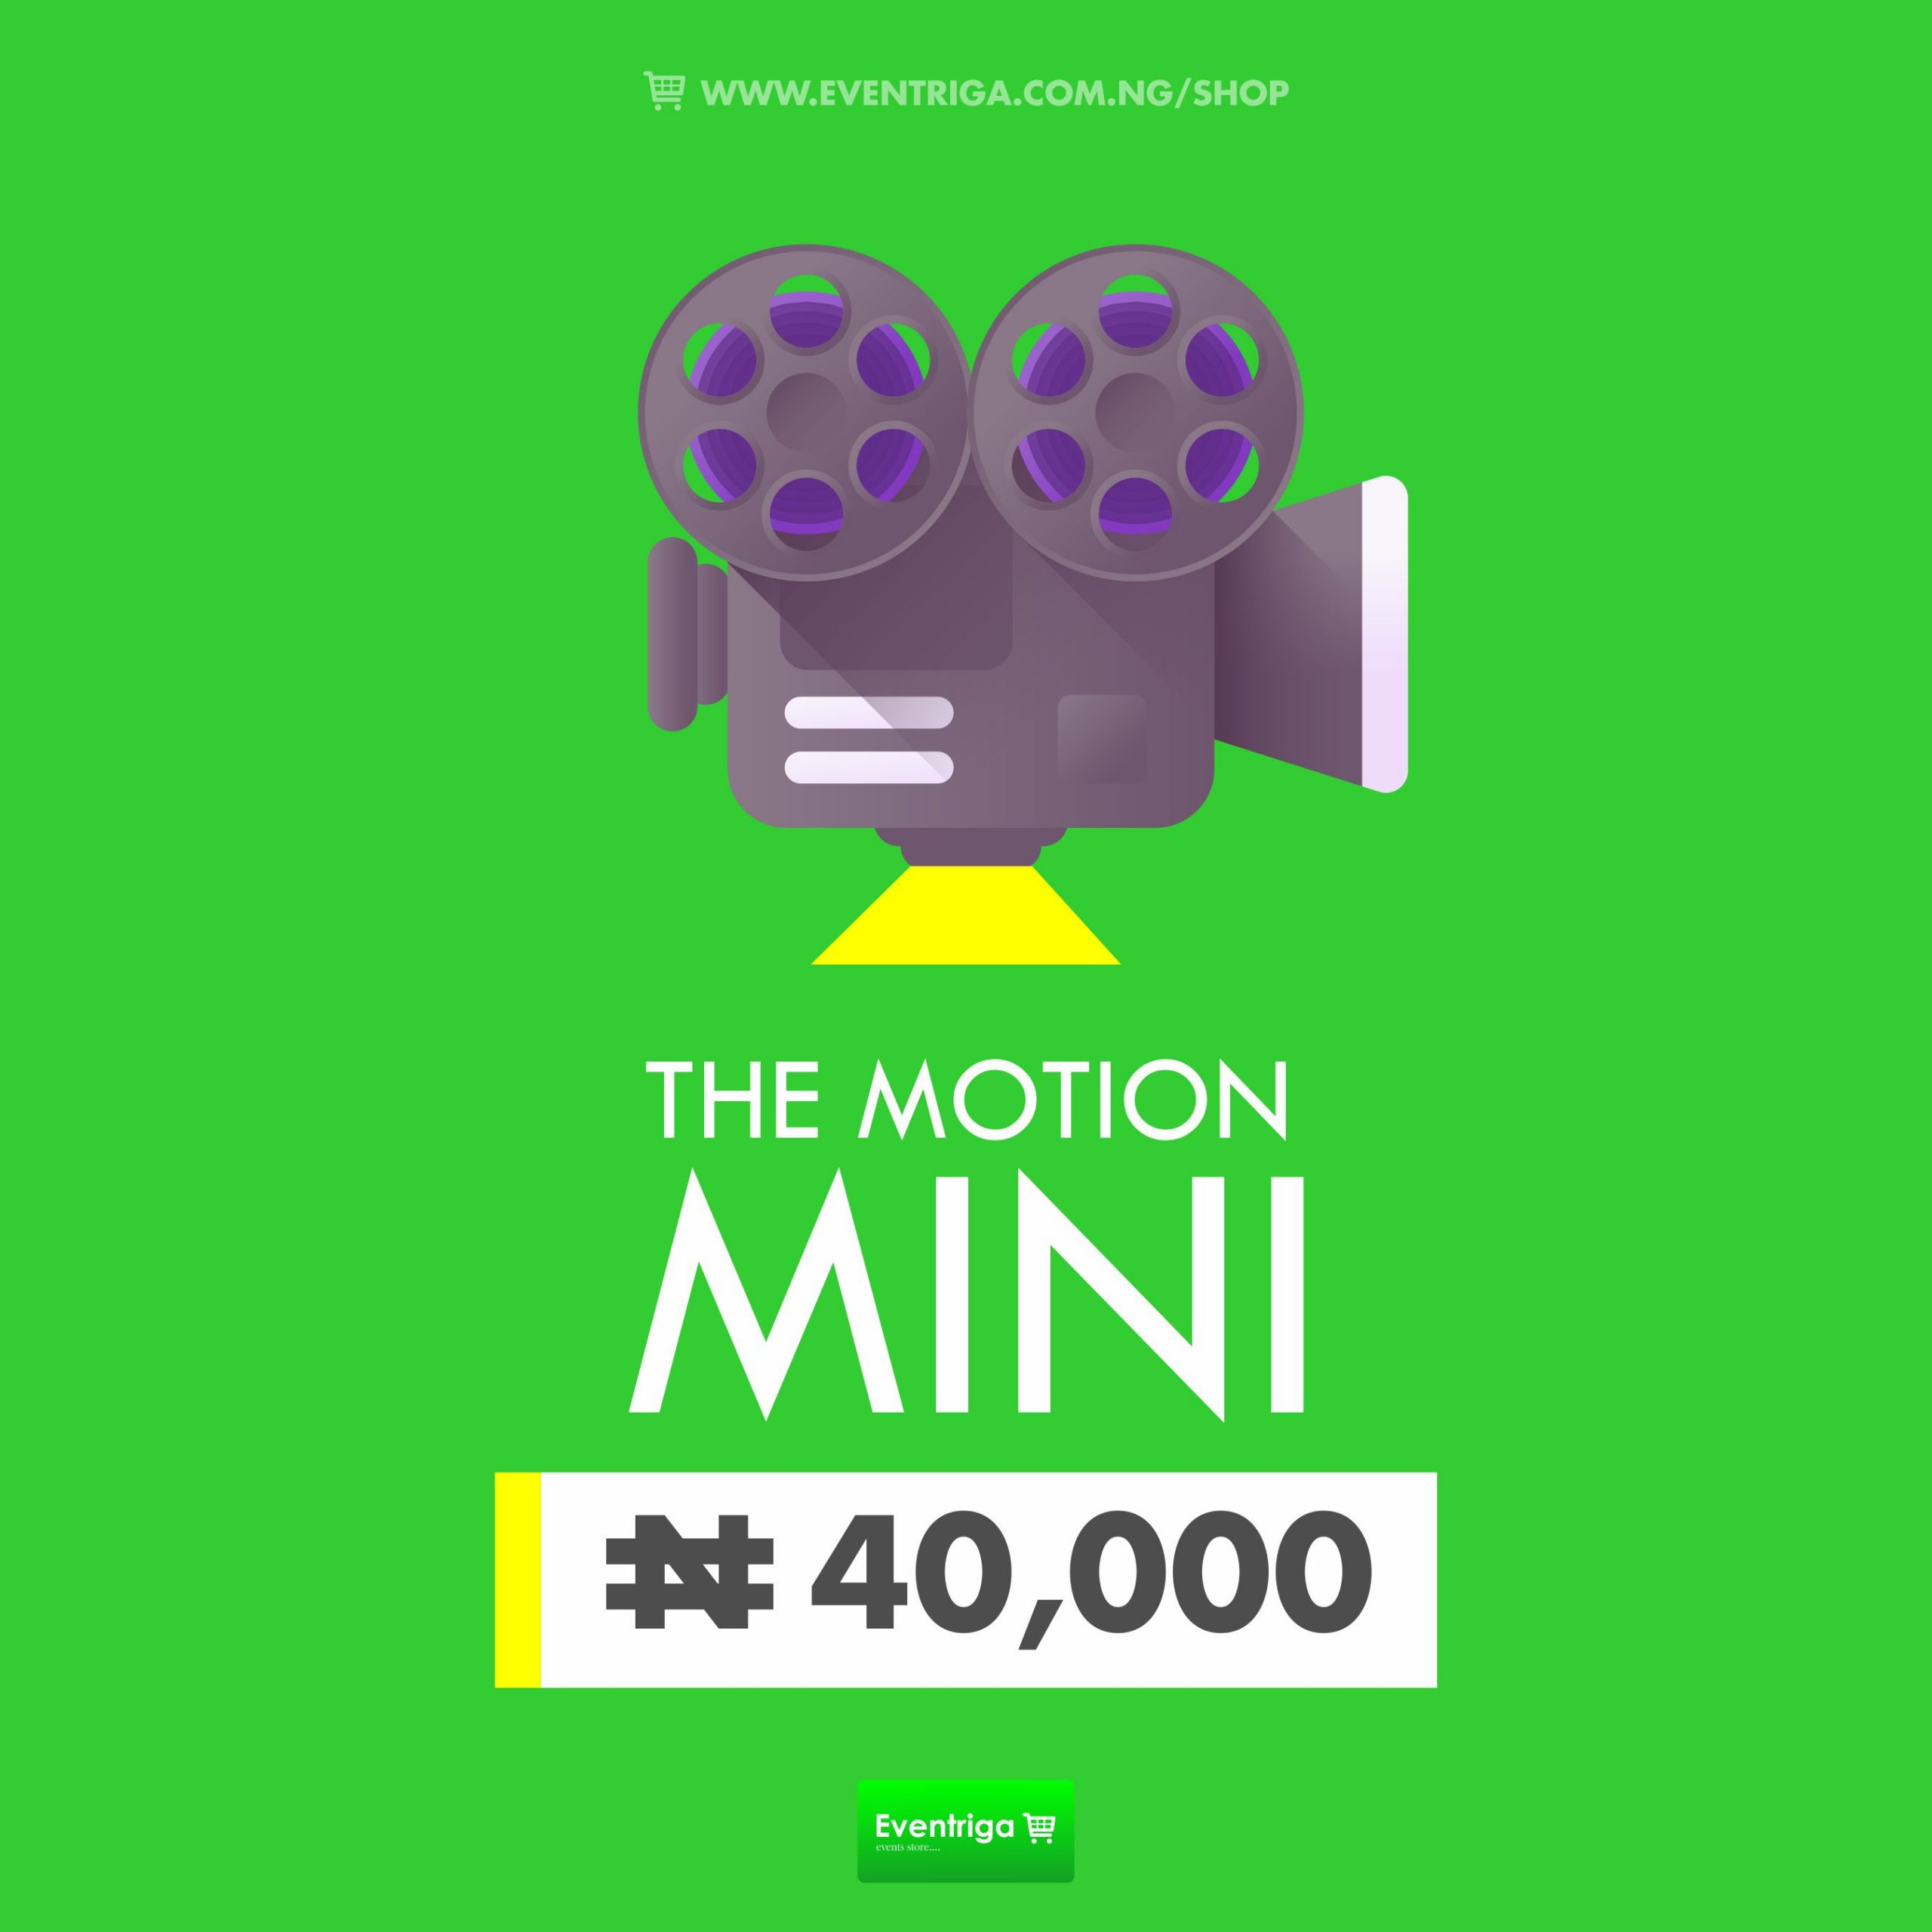 The Motion Mini